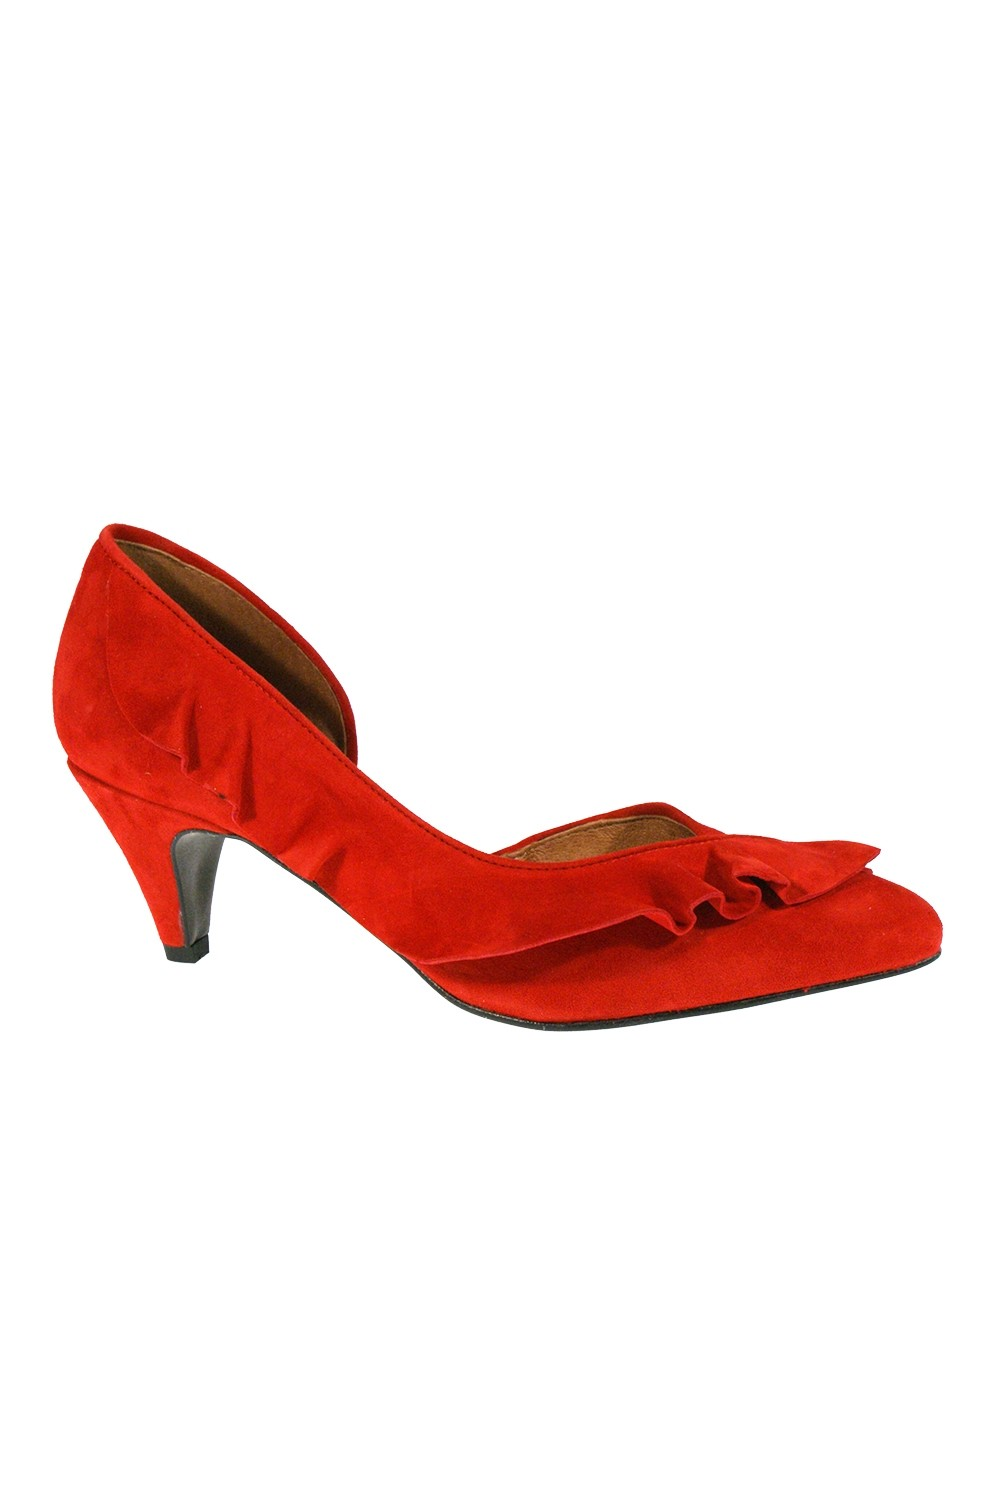 Mentor W7771 Red Suede